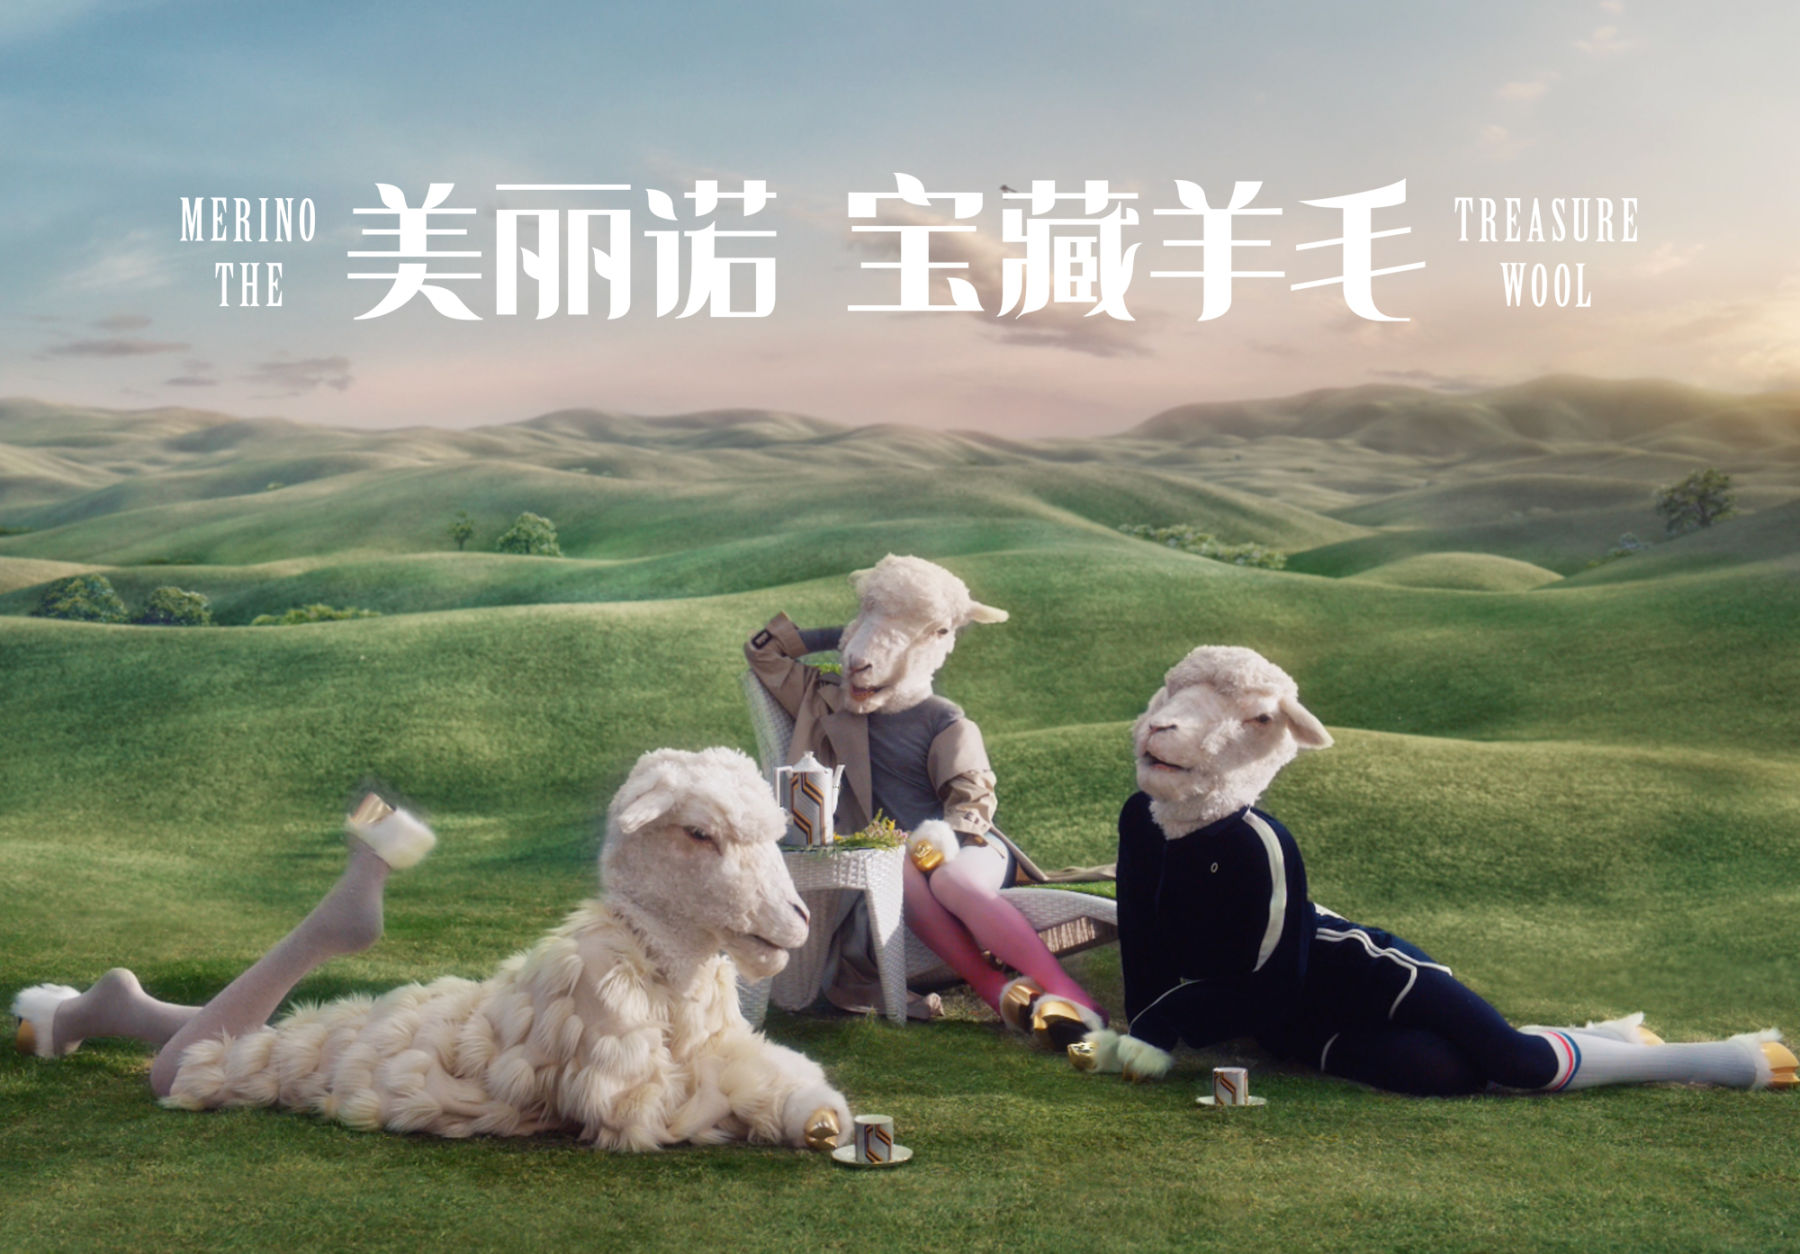 woolmark sheep 1